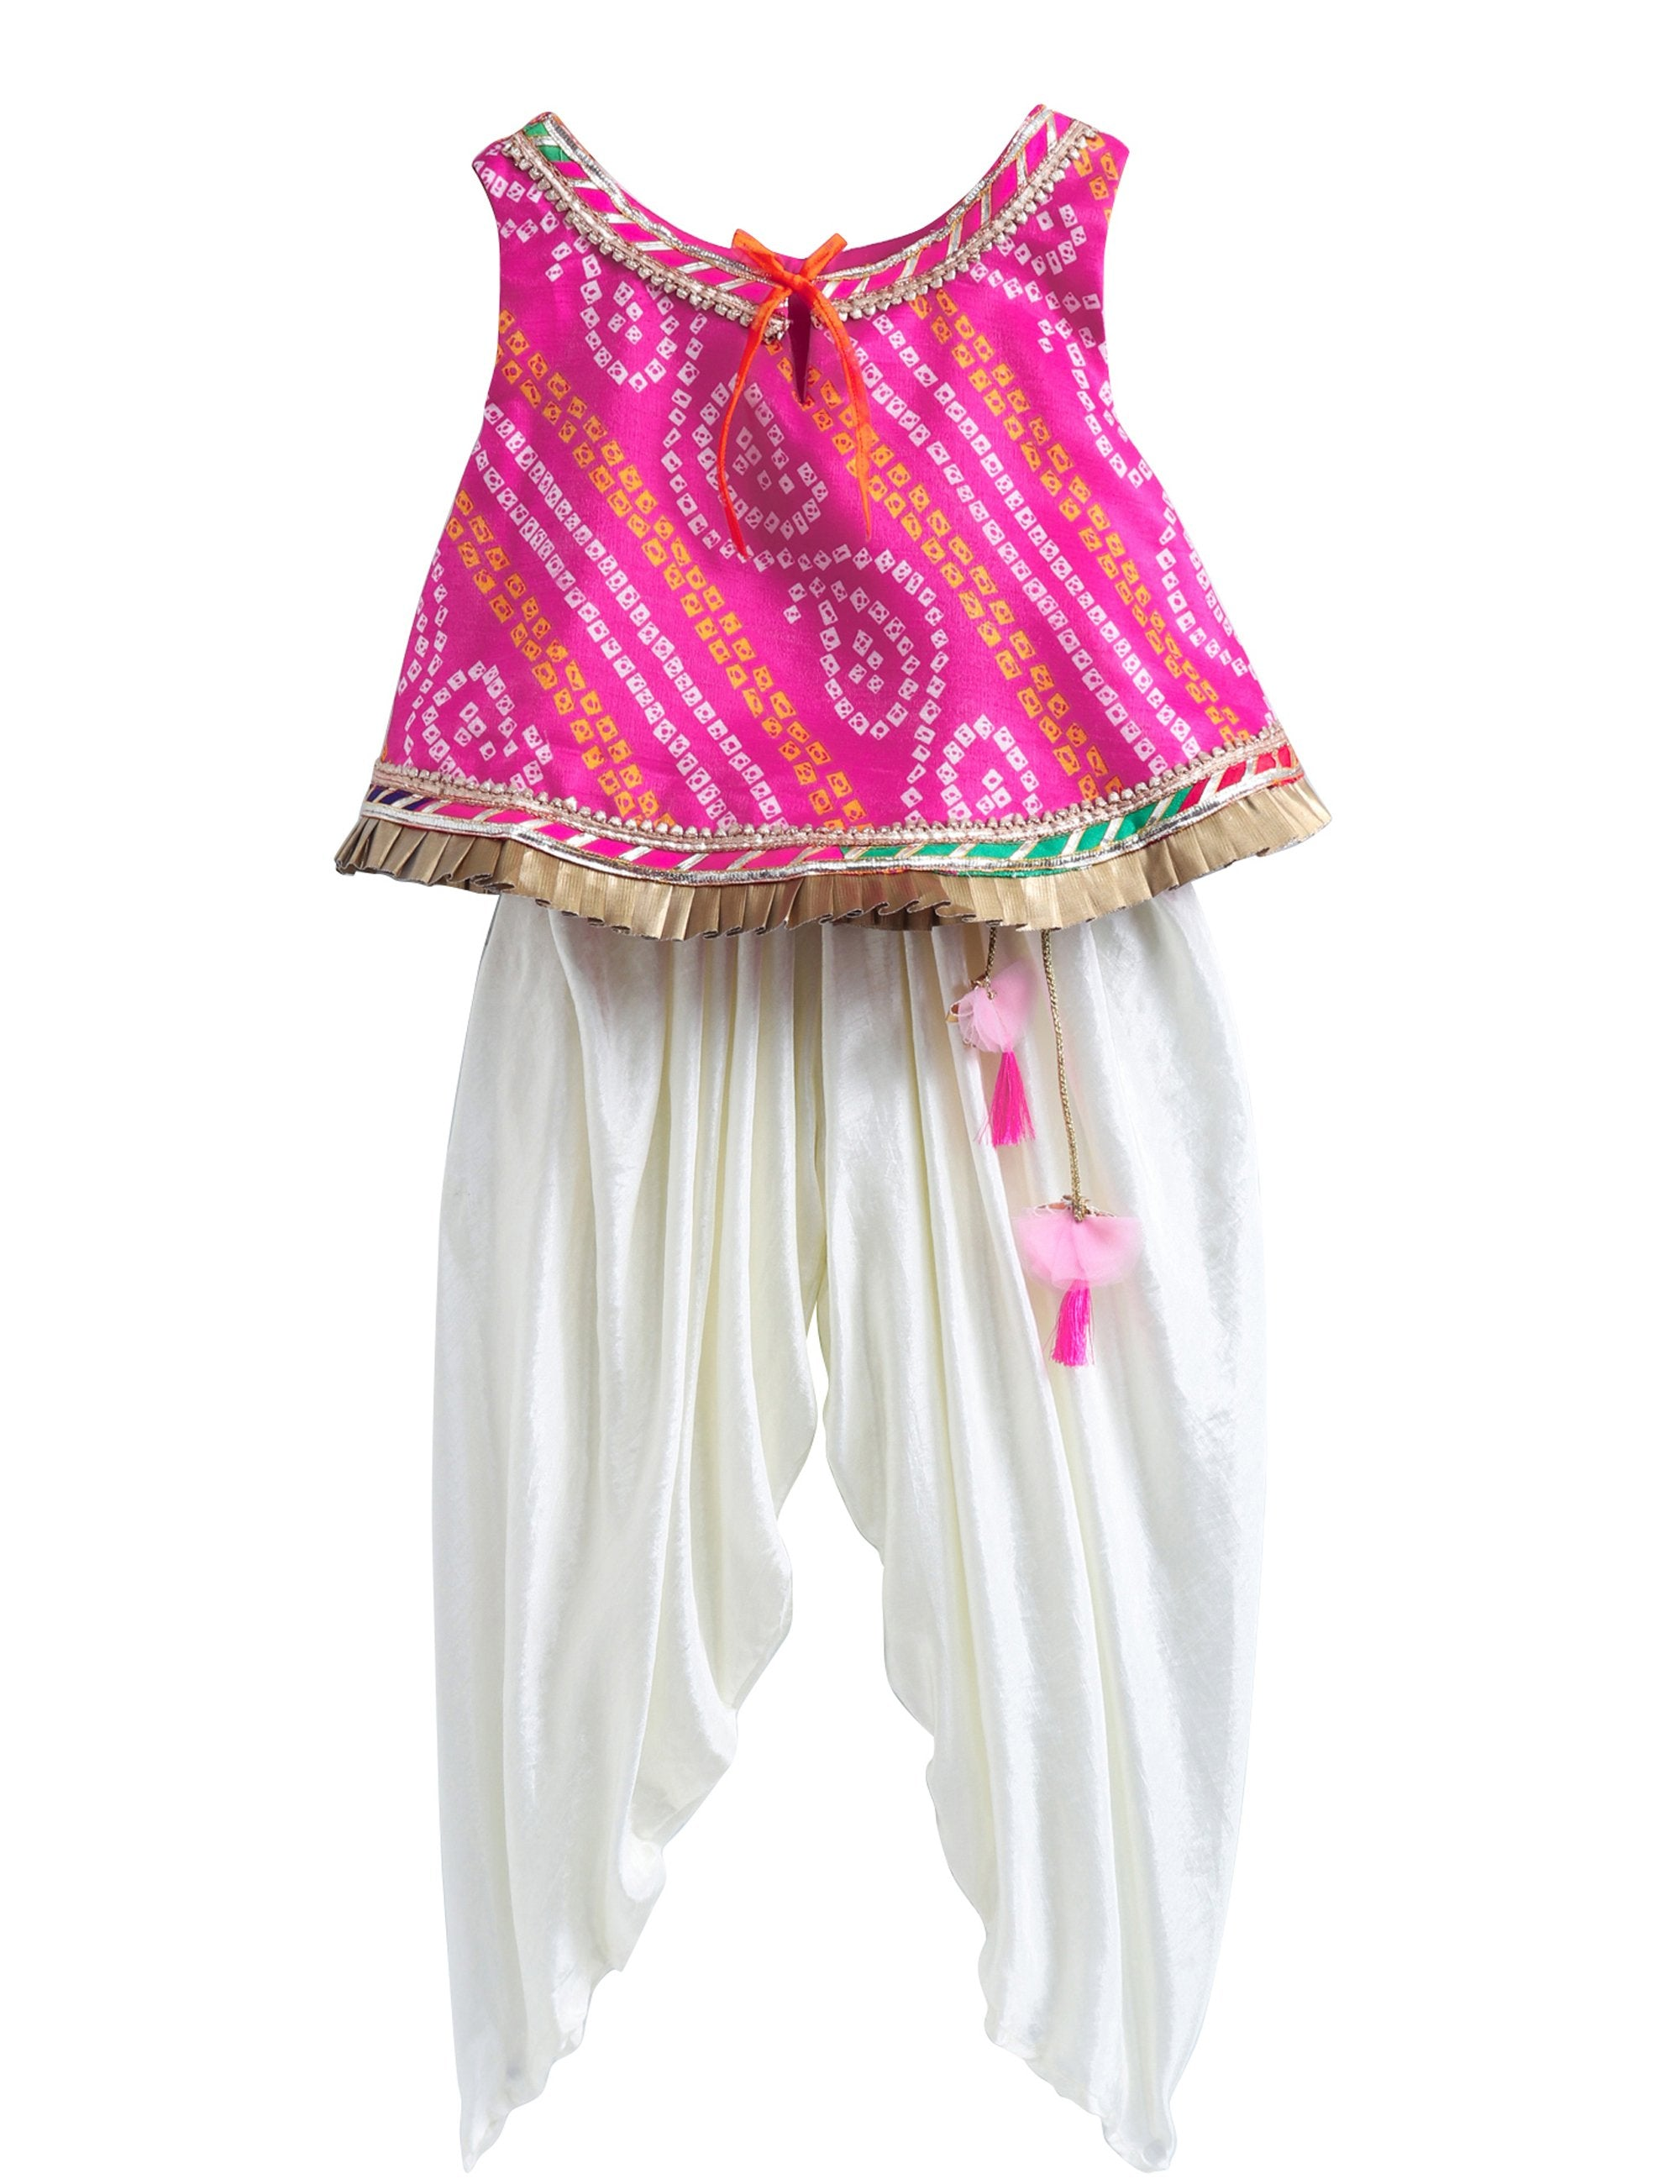 Bandhej Lace Work Top with Matching Dhoti with Latkans.